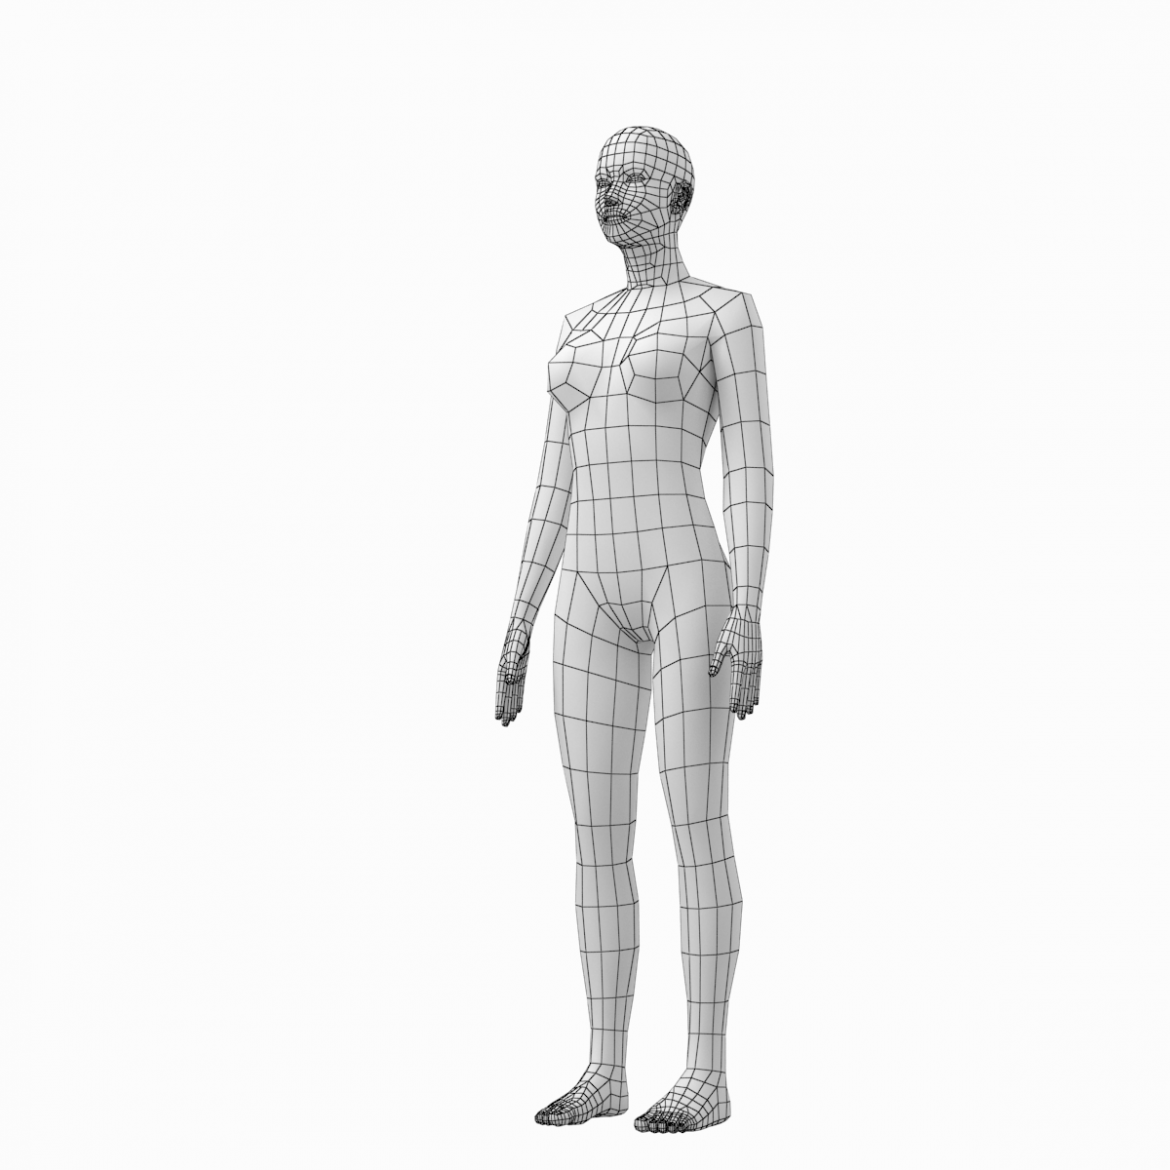 female and male deailed base mesh in rest pose 3d model 3ds max dxf dwg fbx c4d dae ma mb  obj 301299